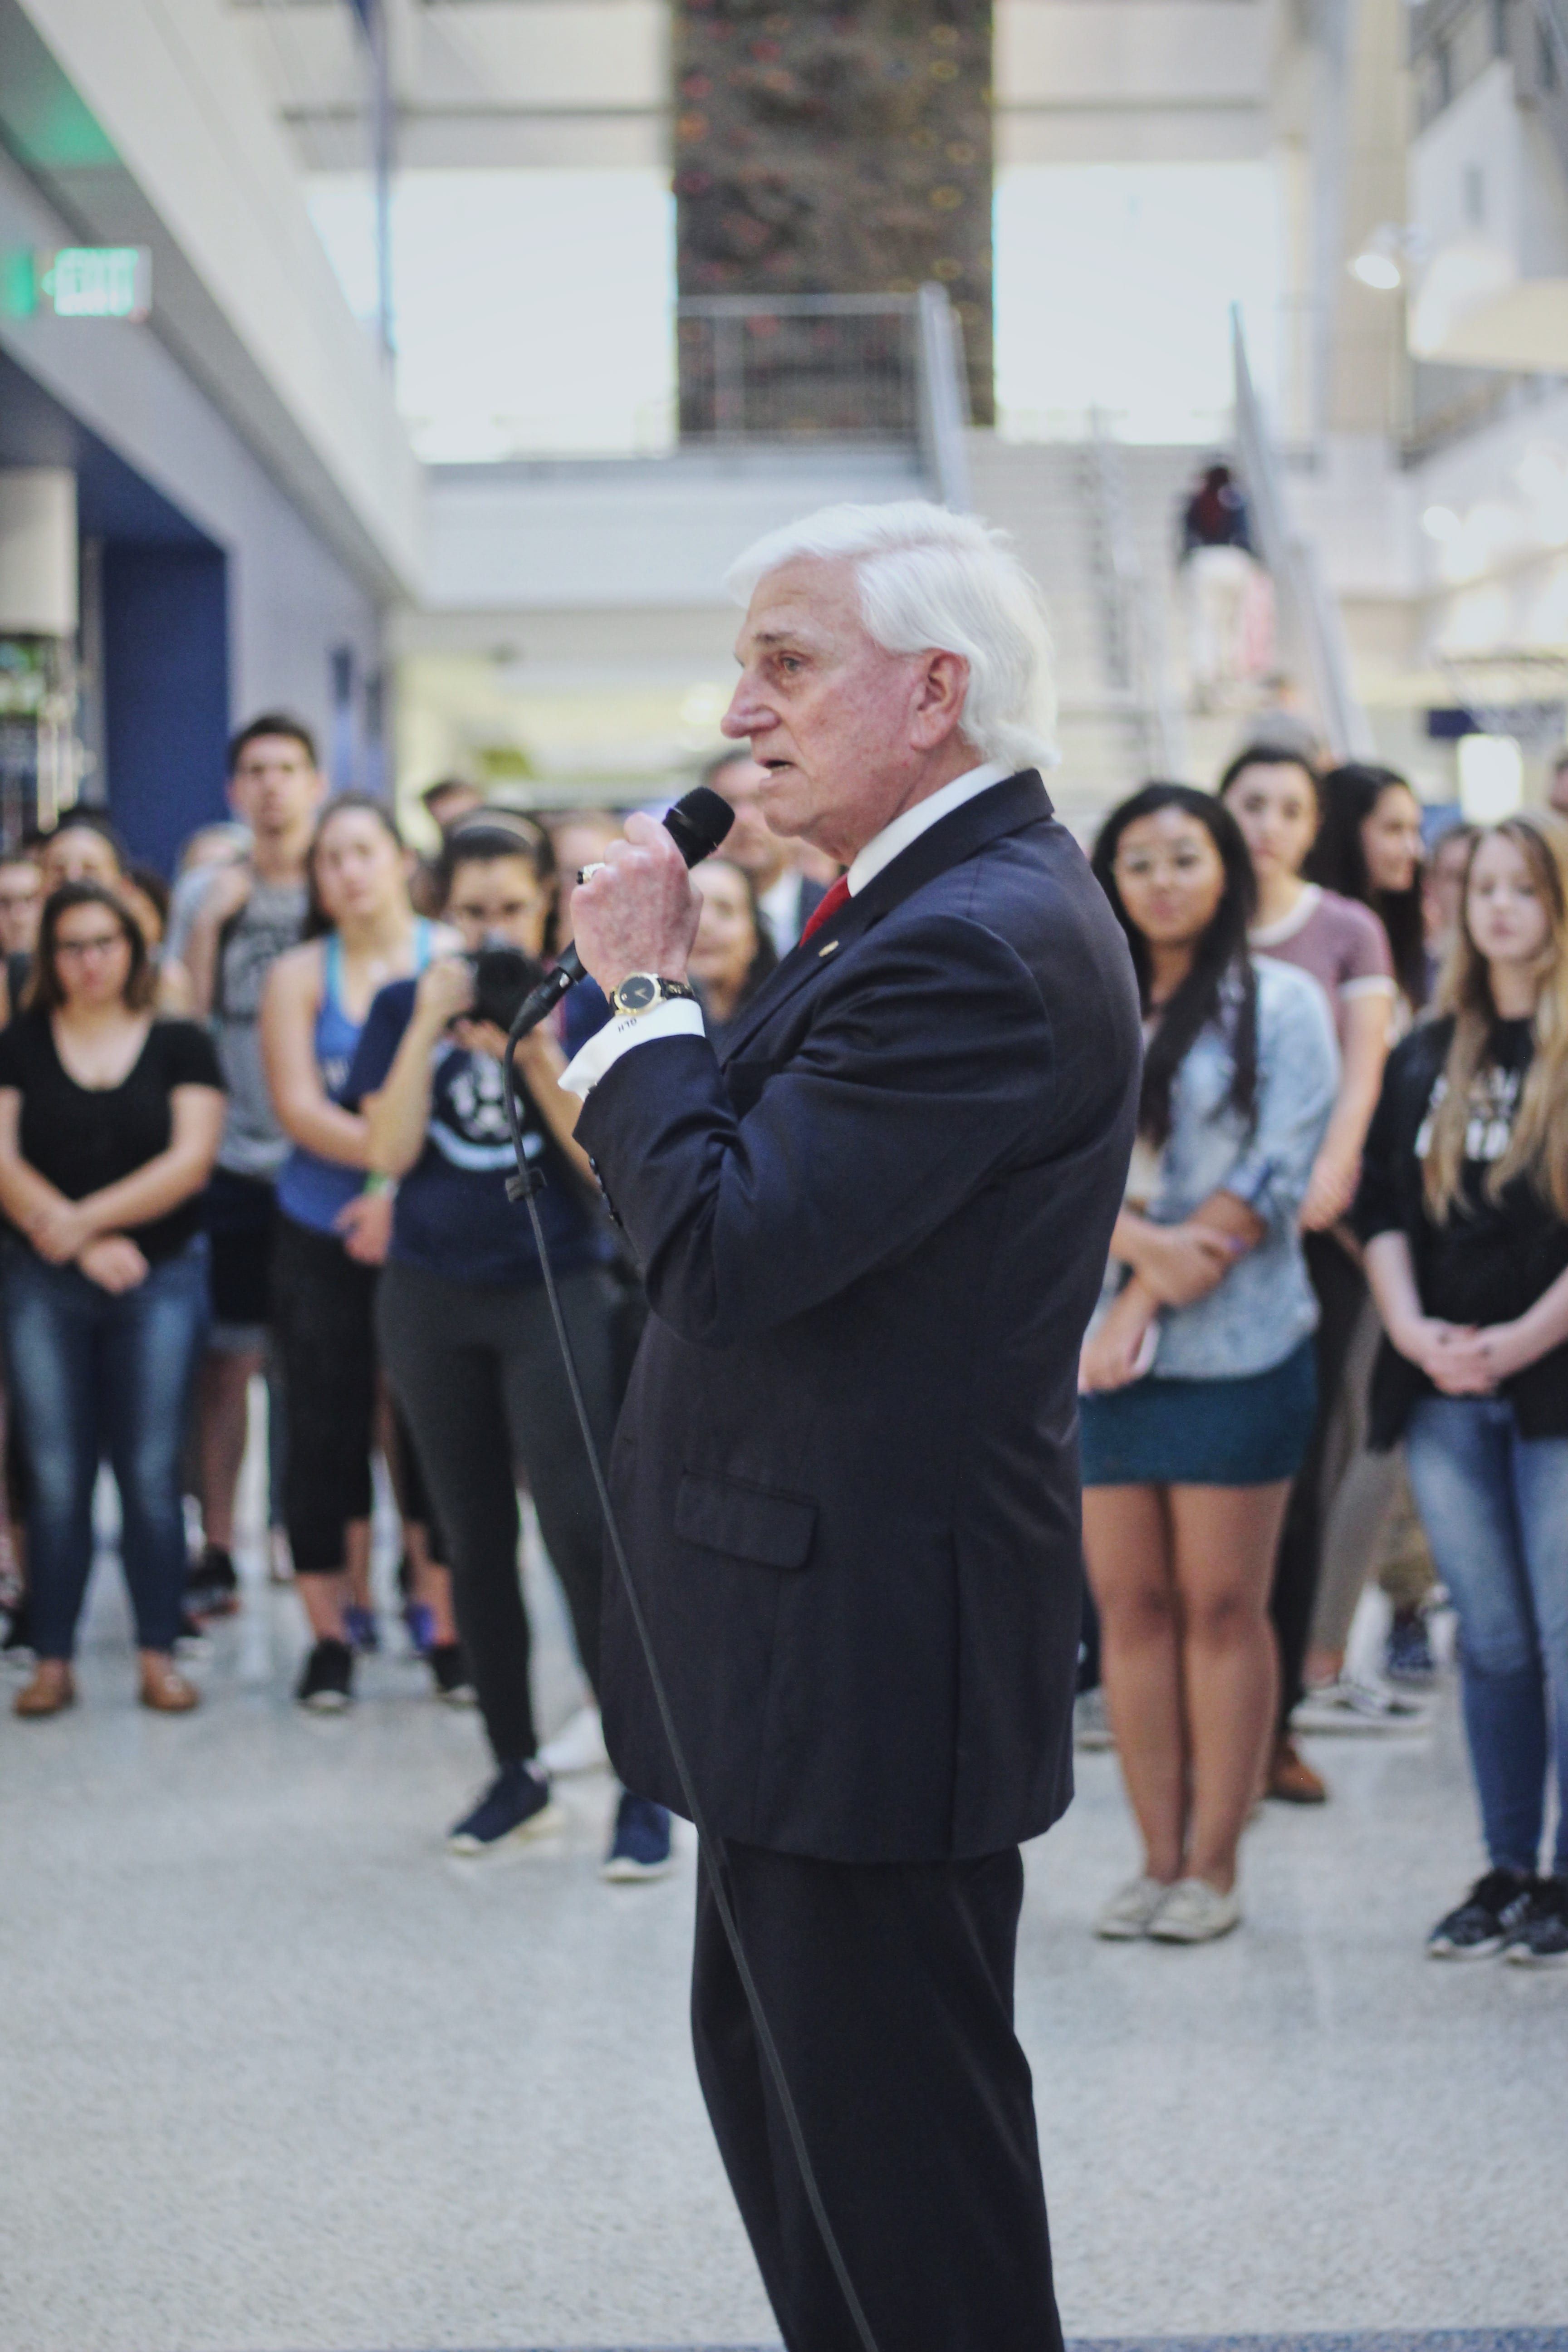 President Hanbury speaks out against the legislative system and calls on  students and the community to work for a change